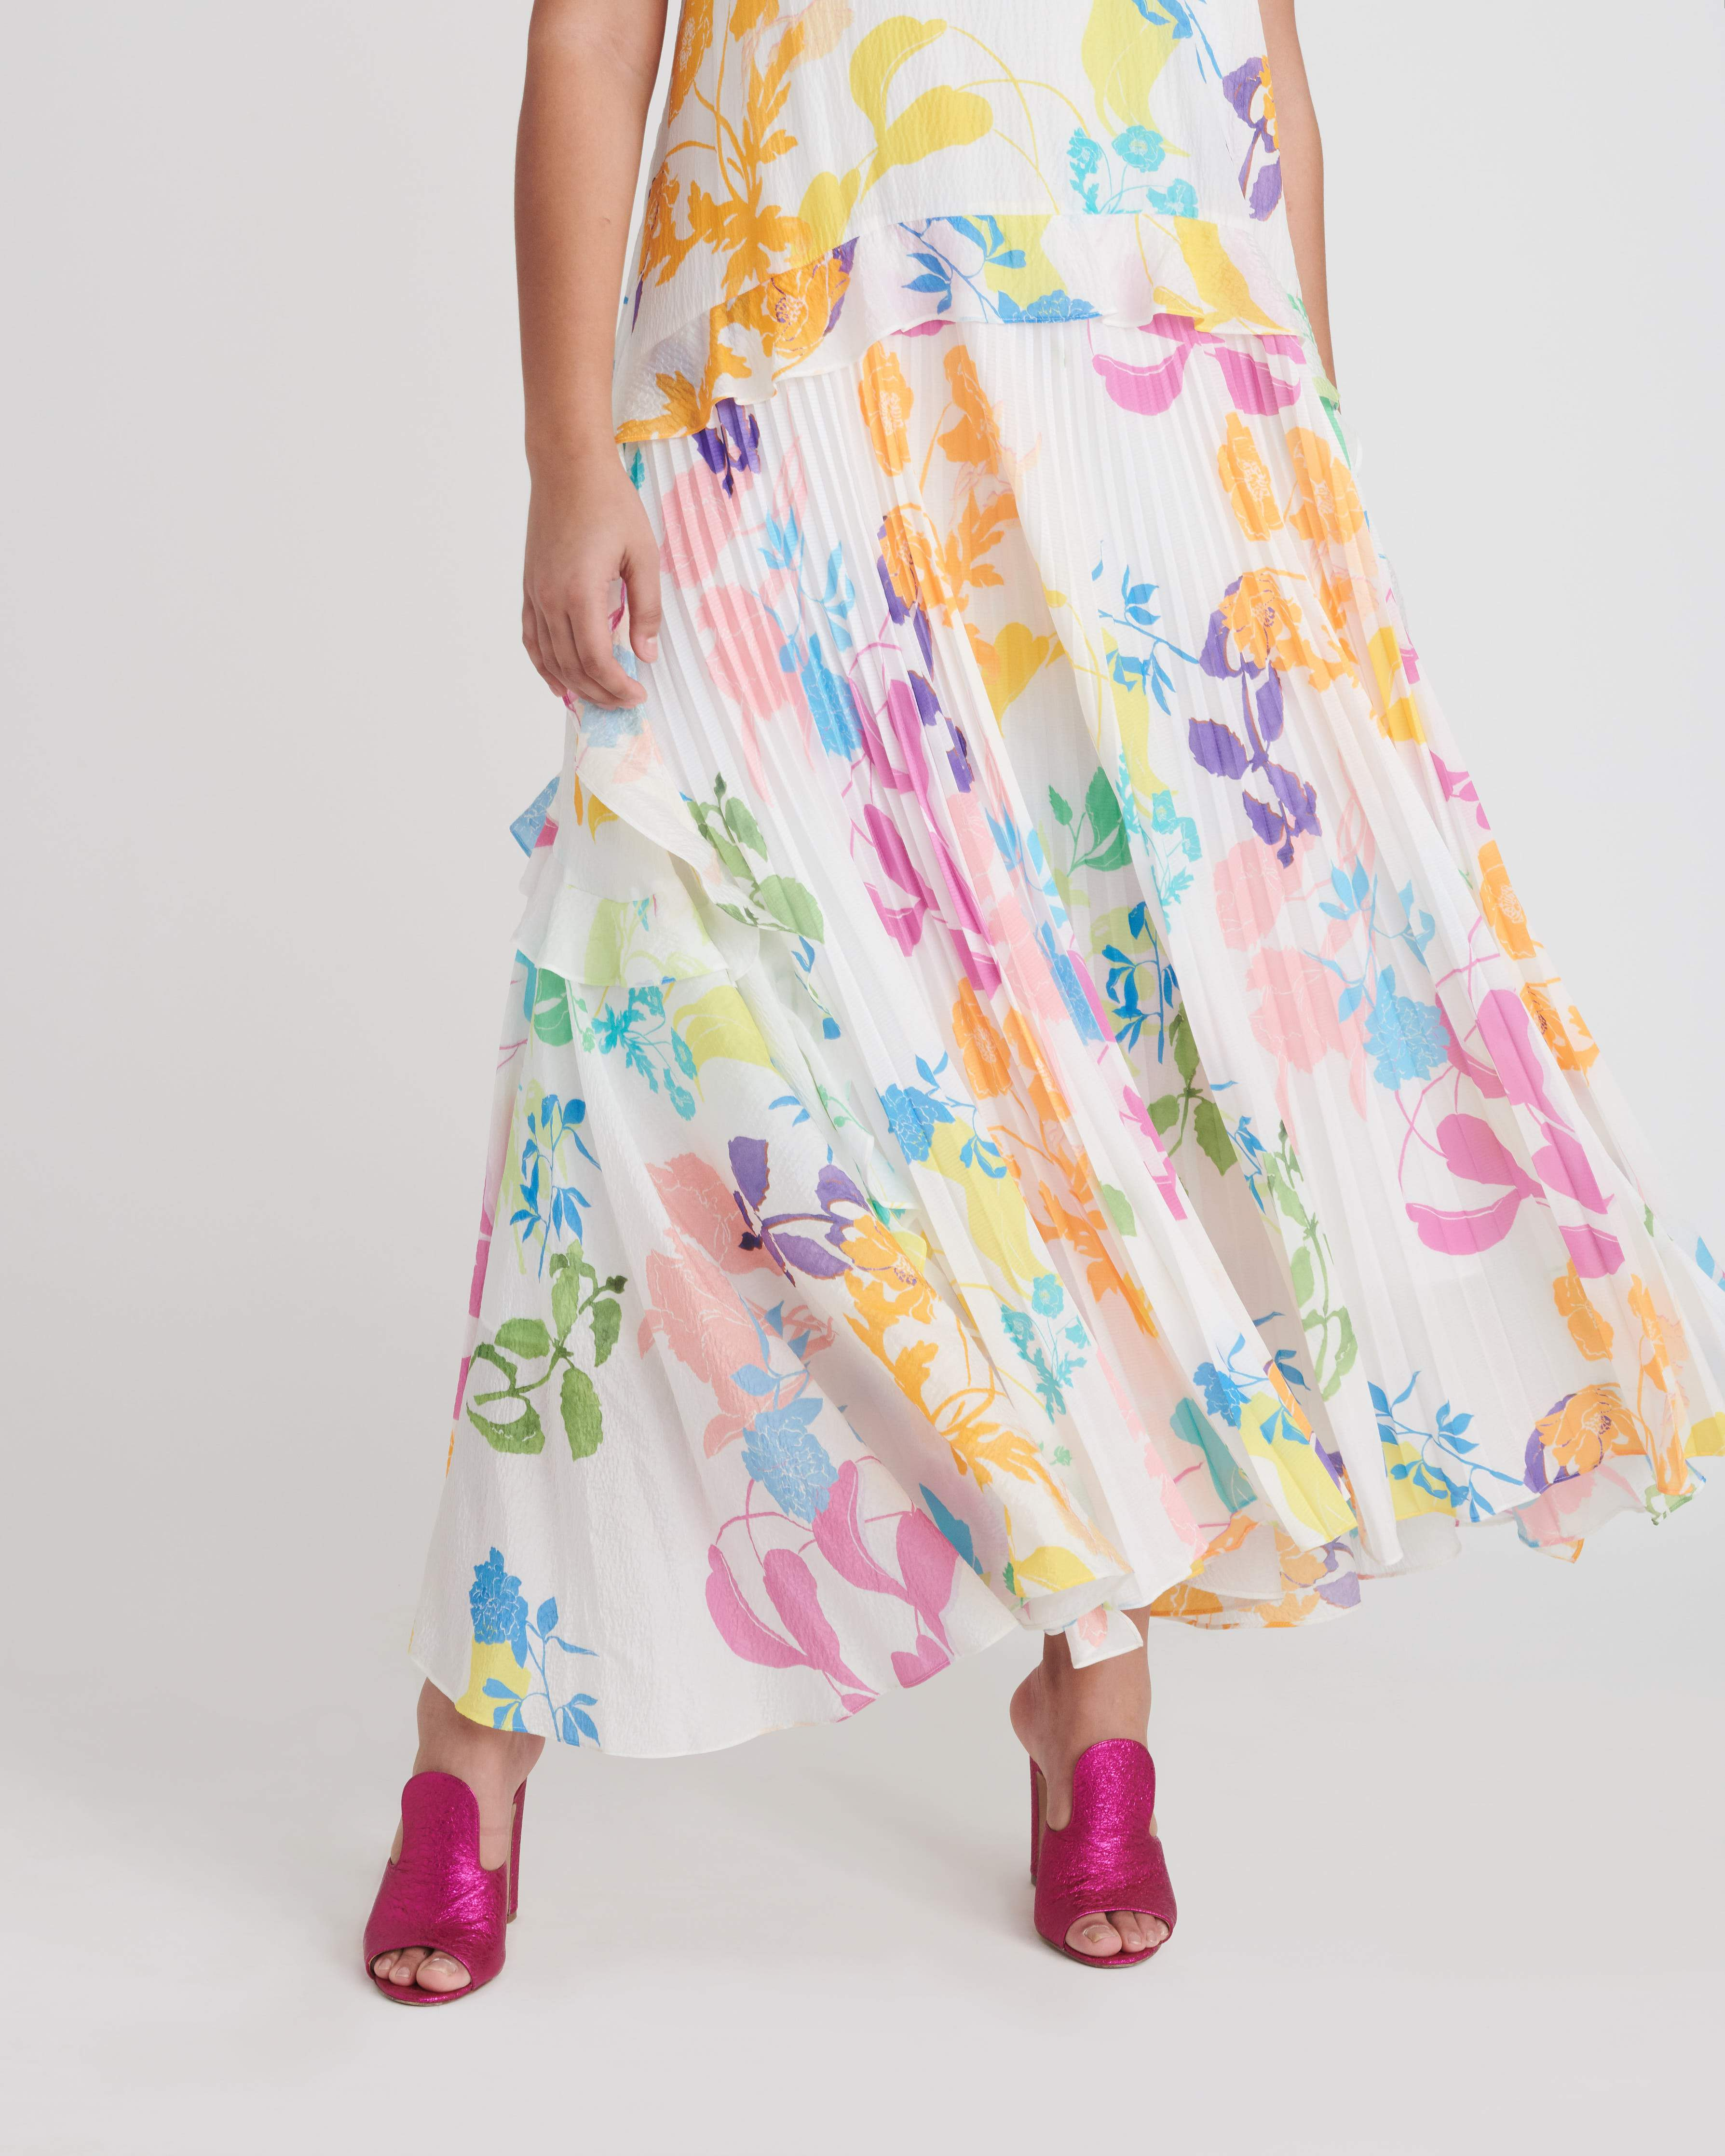 Colette Dress by Tanya Taylor - 6